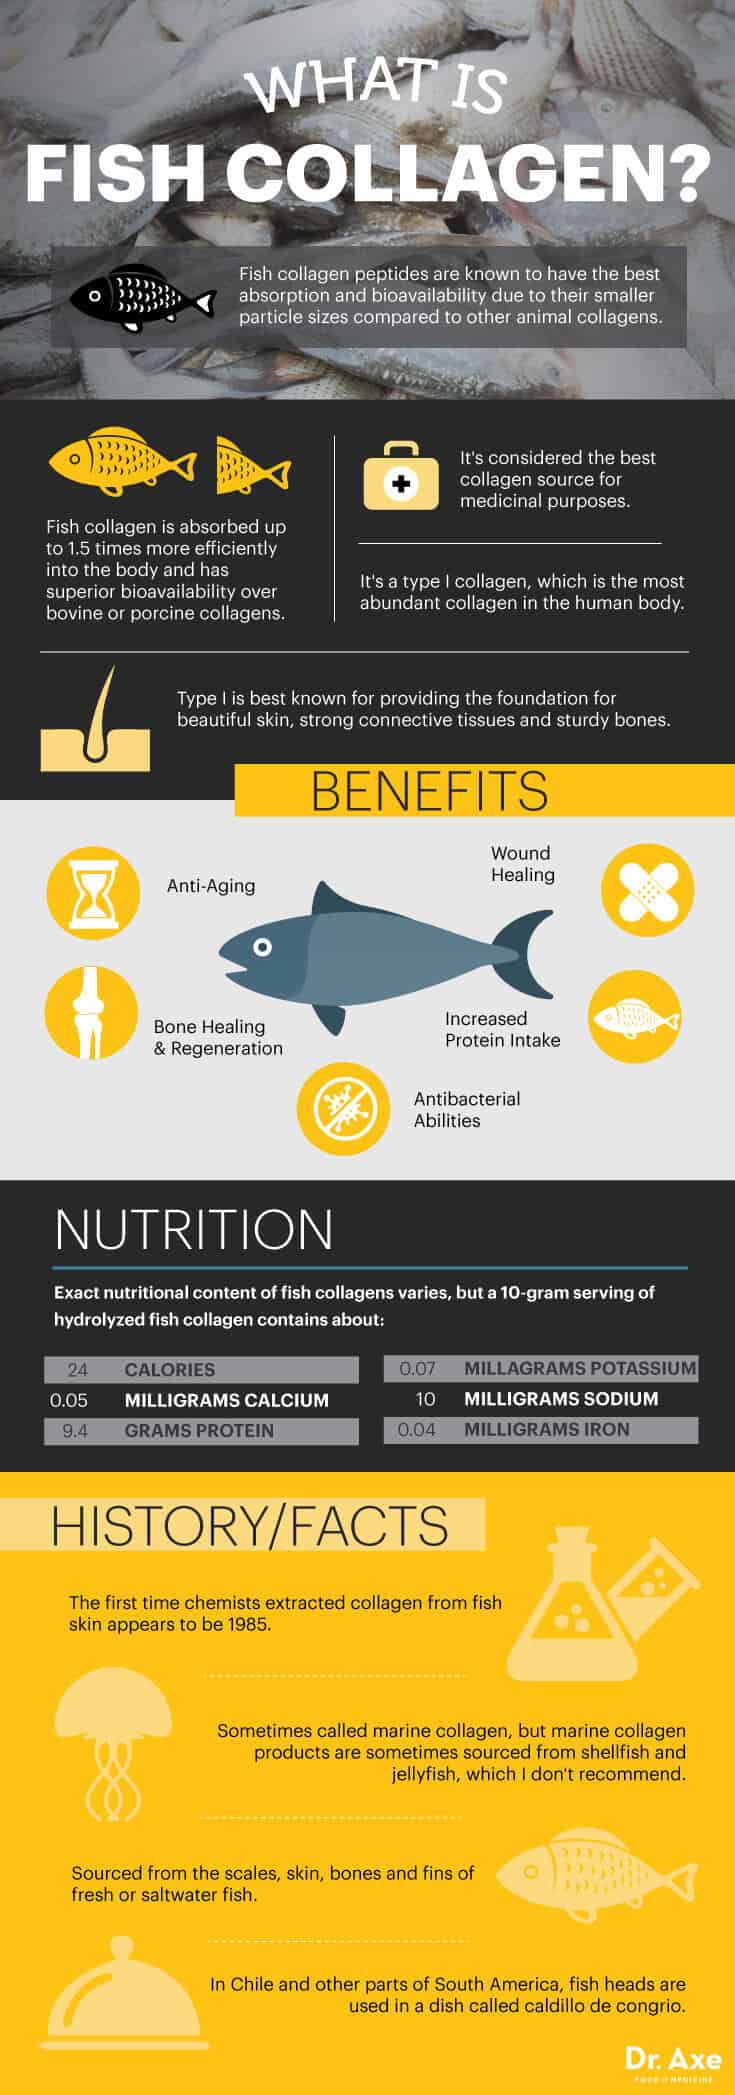 What is fish collagen? - Dr. Axe